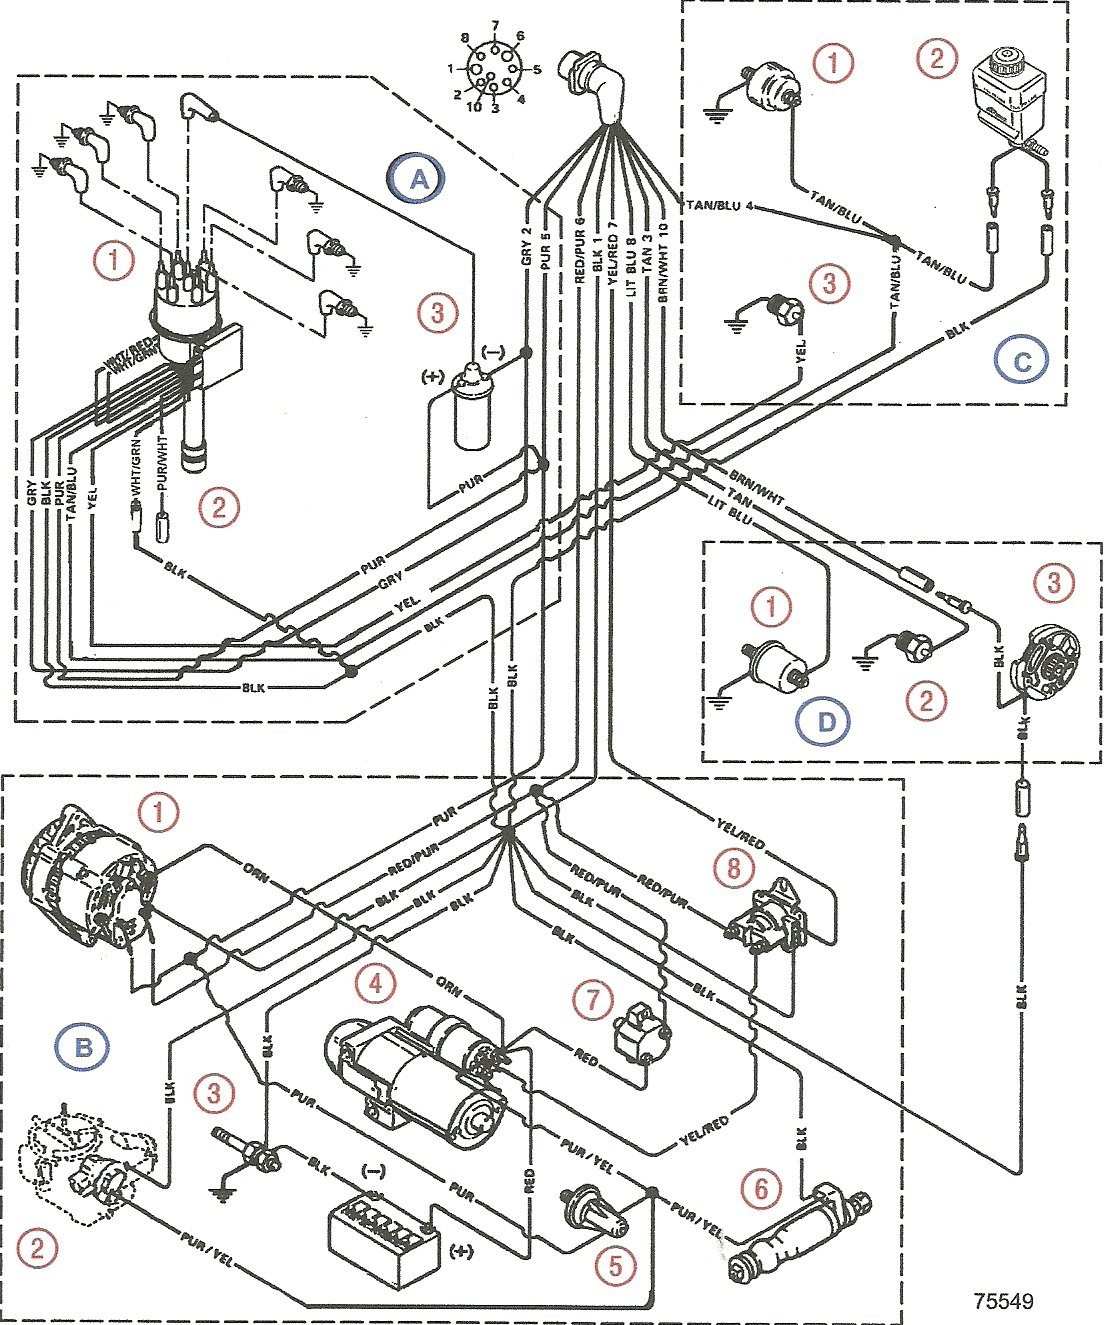 1988 Sea Ray 4 3 Ignition Wiring Diagram